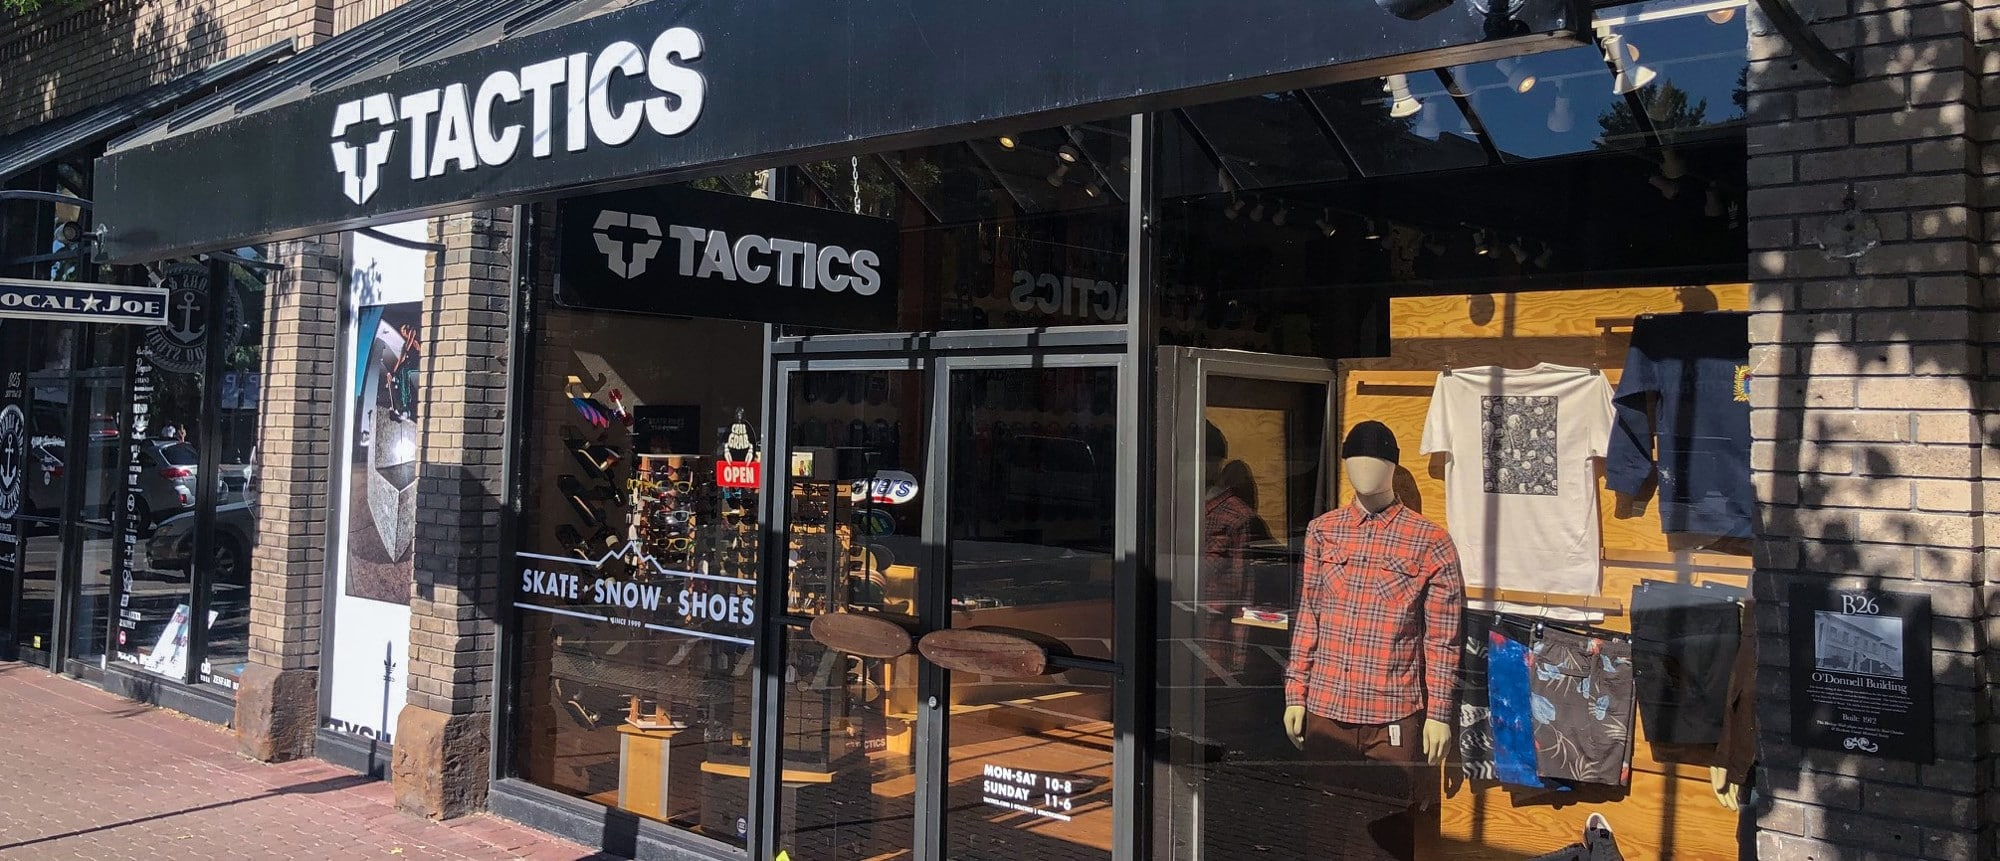 TACTICS: For skatepark or terrain park, shop the latest boards, footwear and clothing